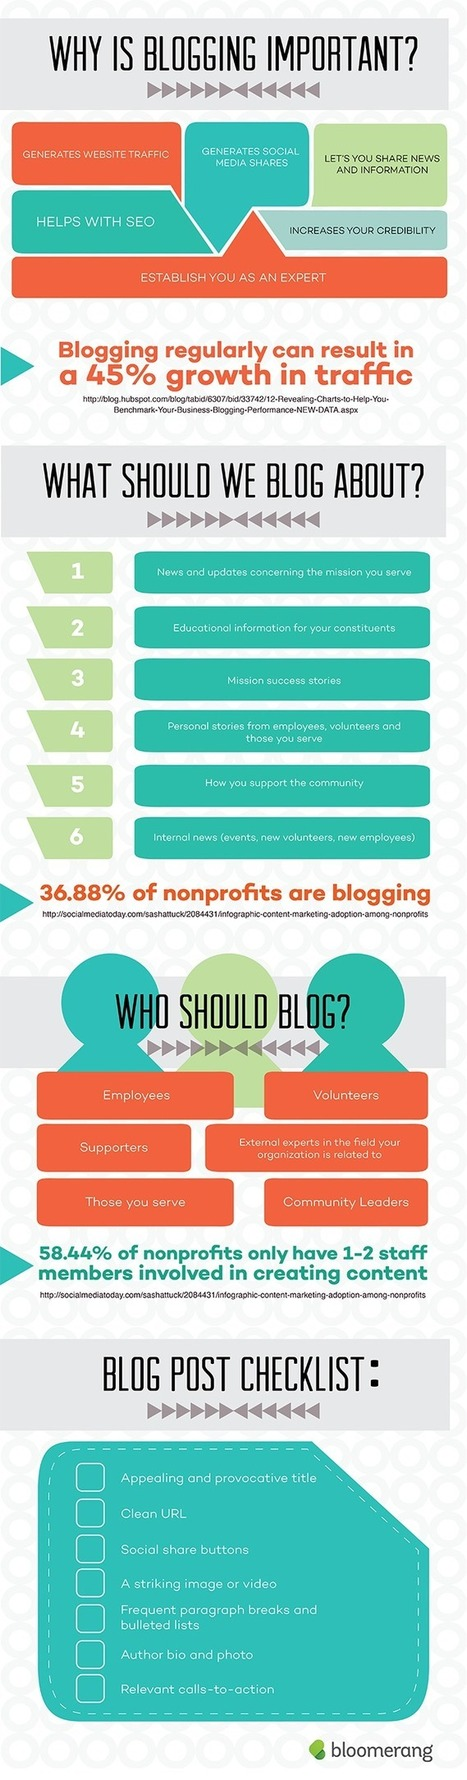 A Guide to Nonprofit Blogging [INFOGRAPHIC] | Digital-News on Scoop.it today | Scoop.it